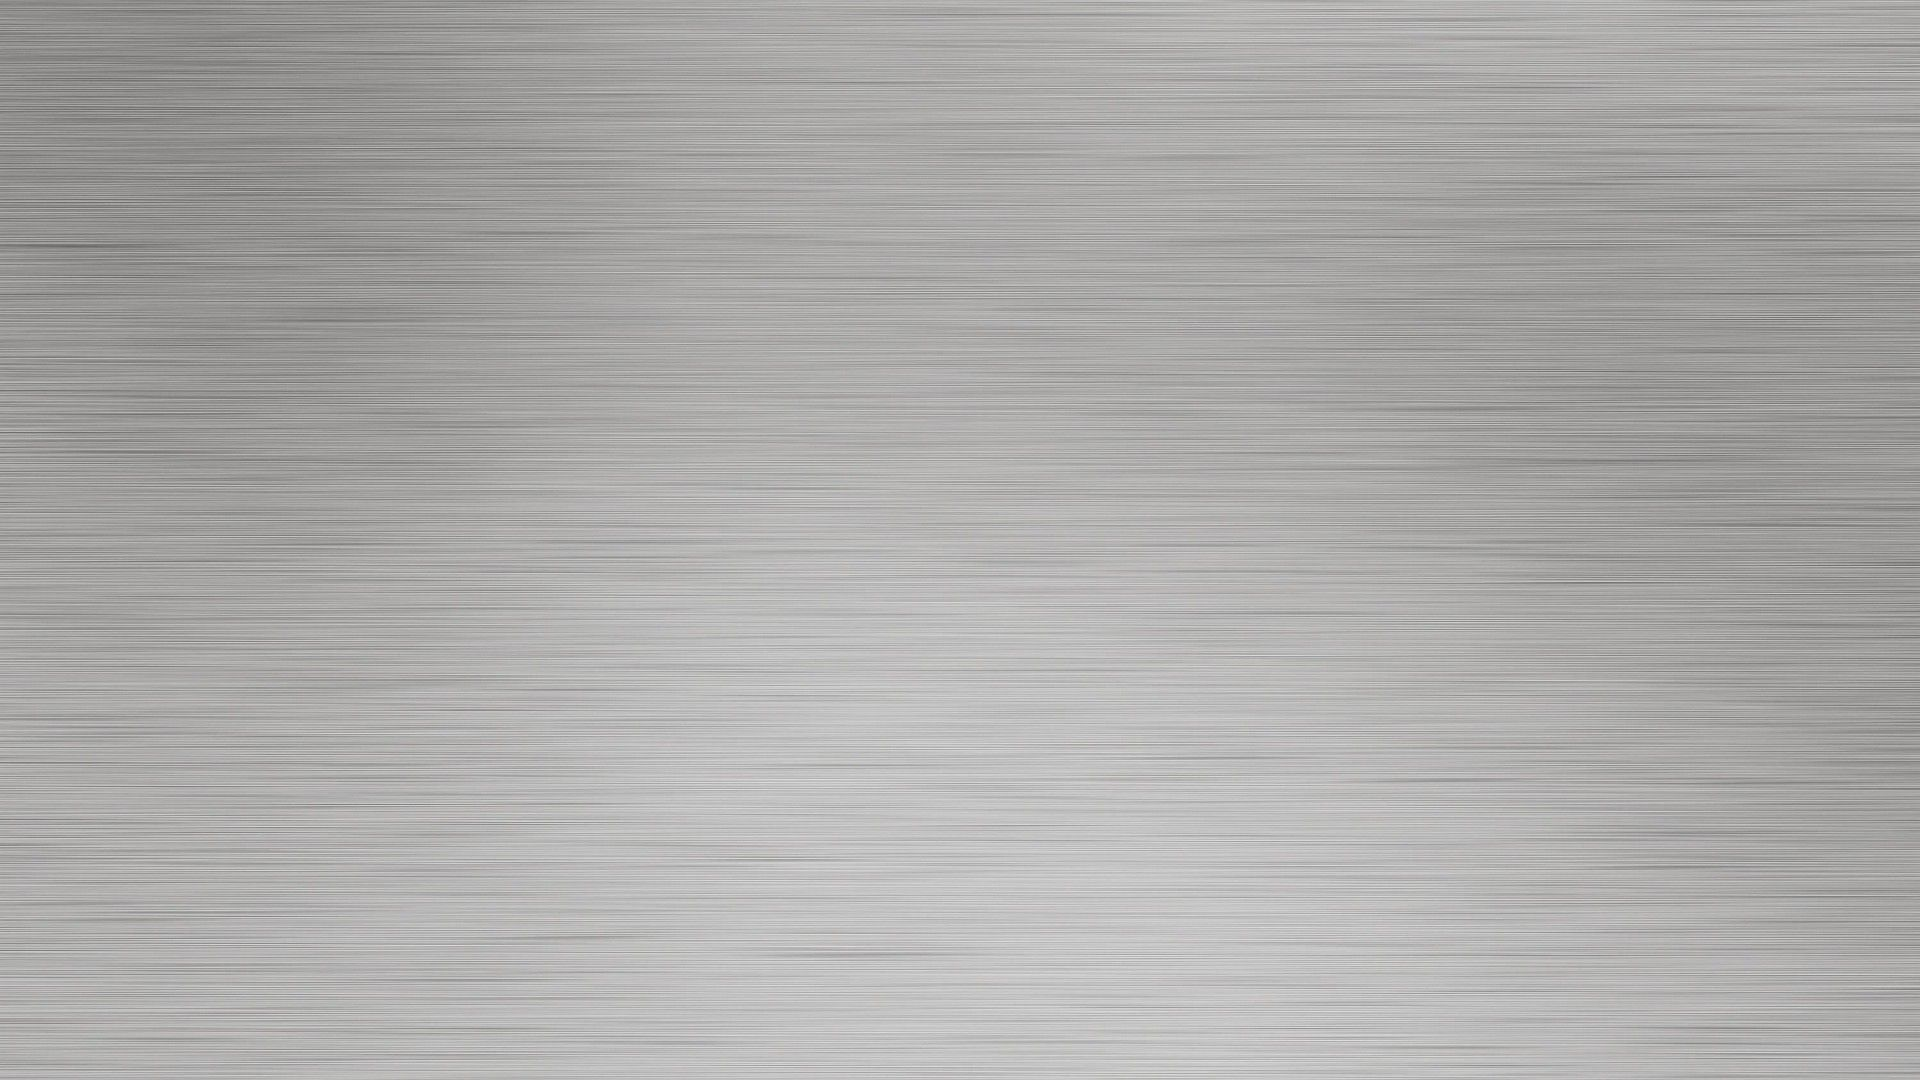 Silver Wallpaper and Background